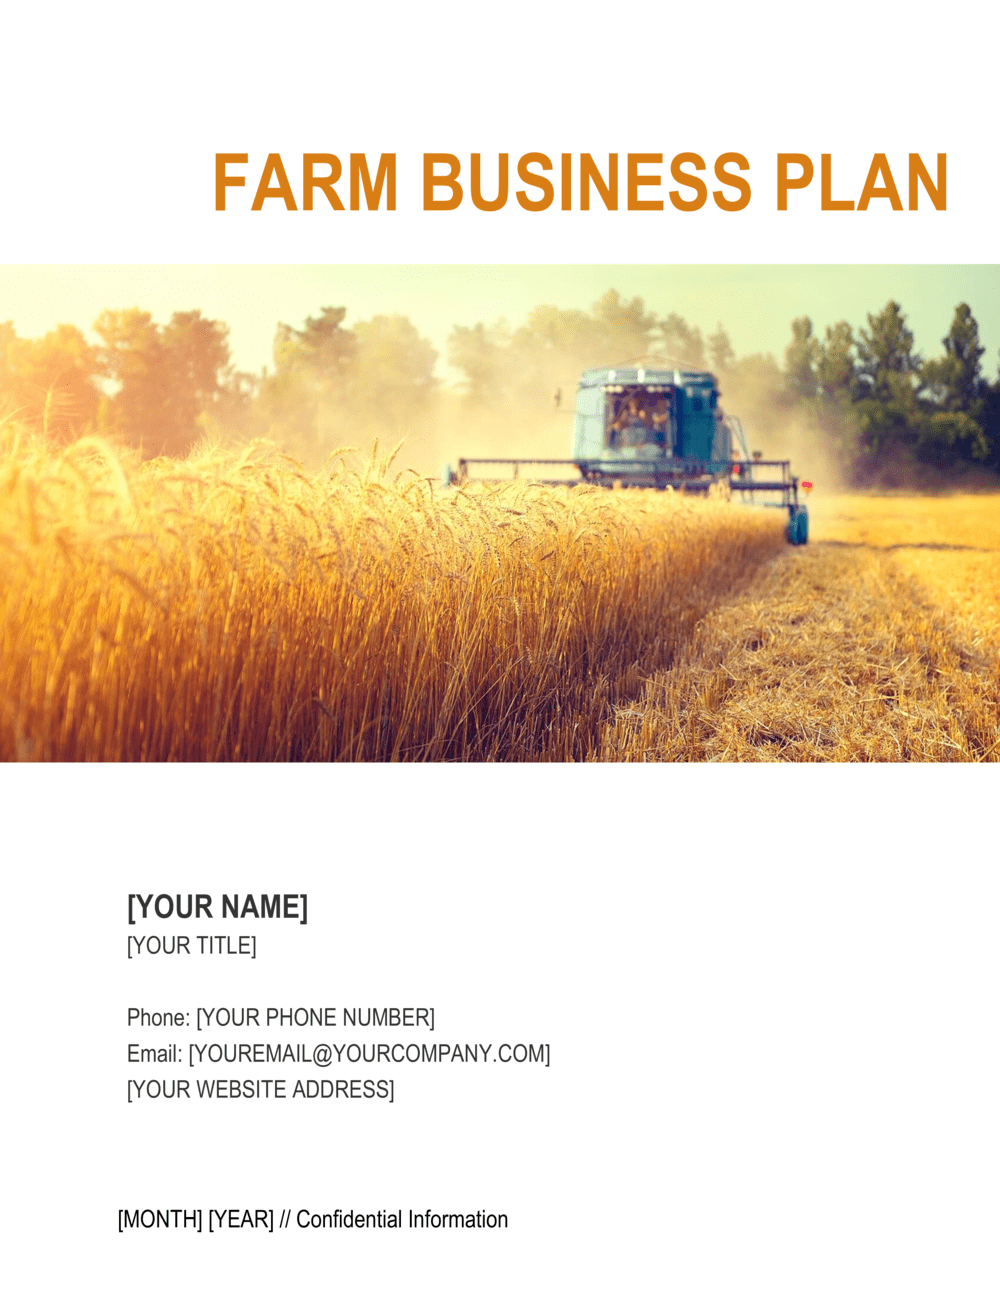 Business-in-a-Box's Farm Business Plan 2 Template